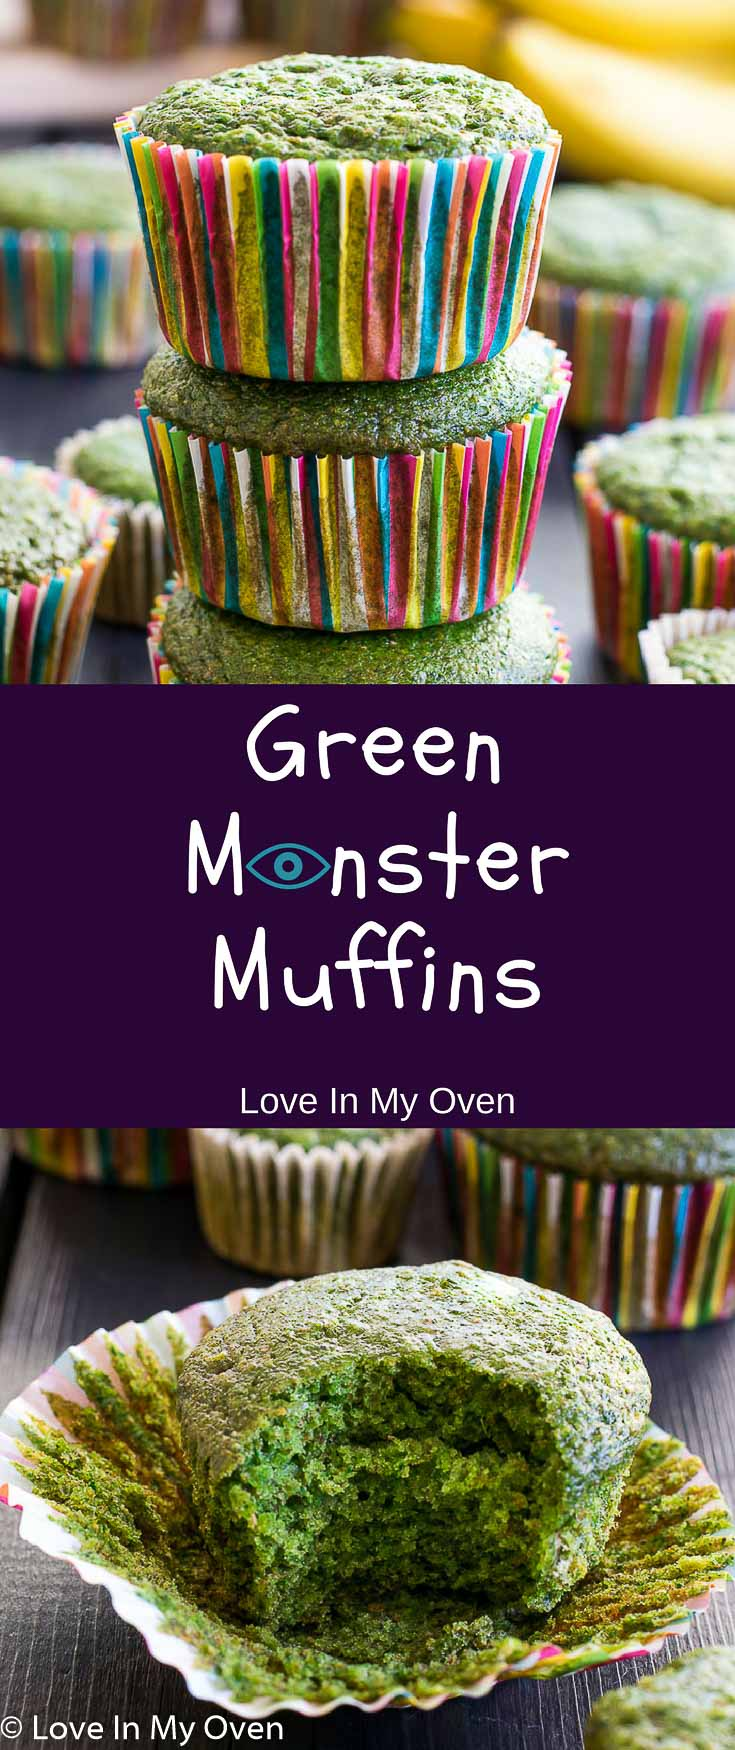 Sneak some spinach into your family's diet in the form of a vibrantly green, fluffy muffin sweetened with natural sugars and full of healthy ingredients.